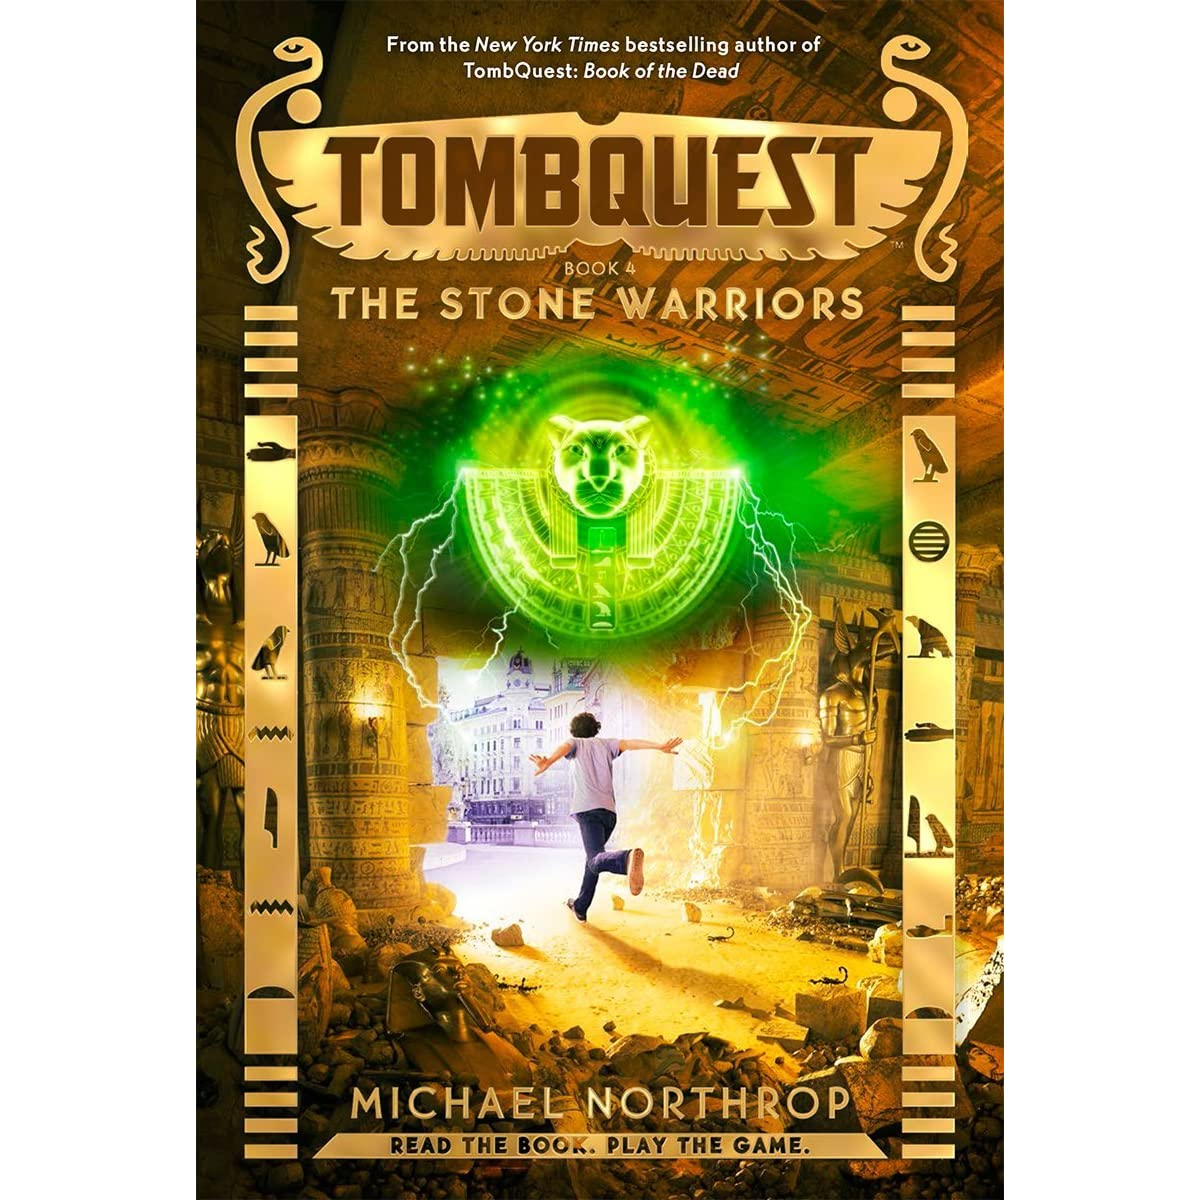 Warriors Book Series Review: The Stone Warriors (TombQuest, #4) By Michael Northrop